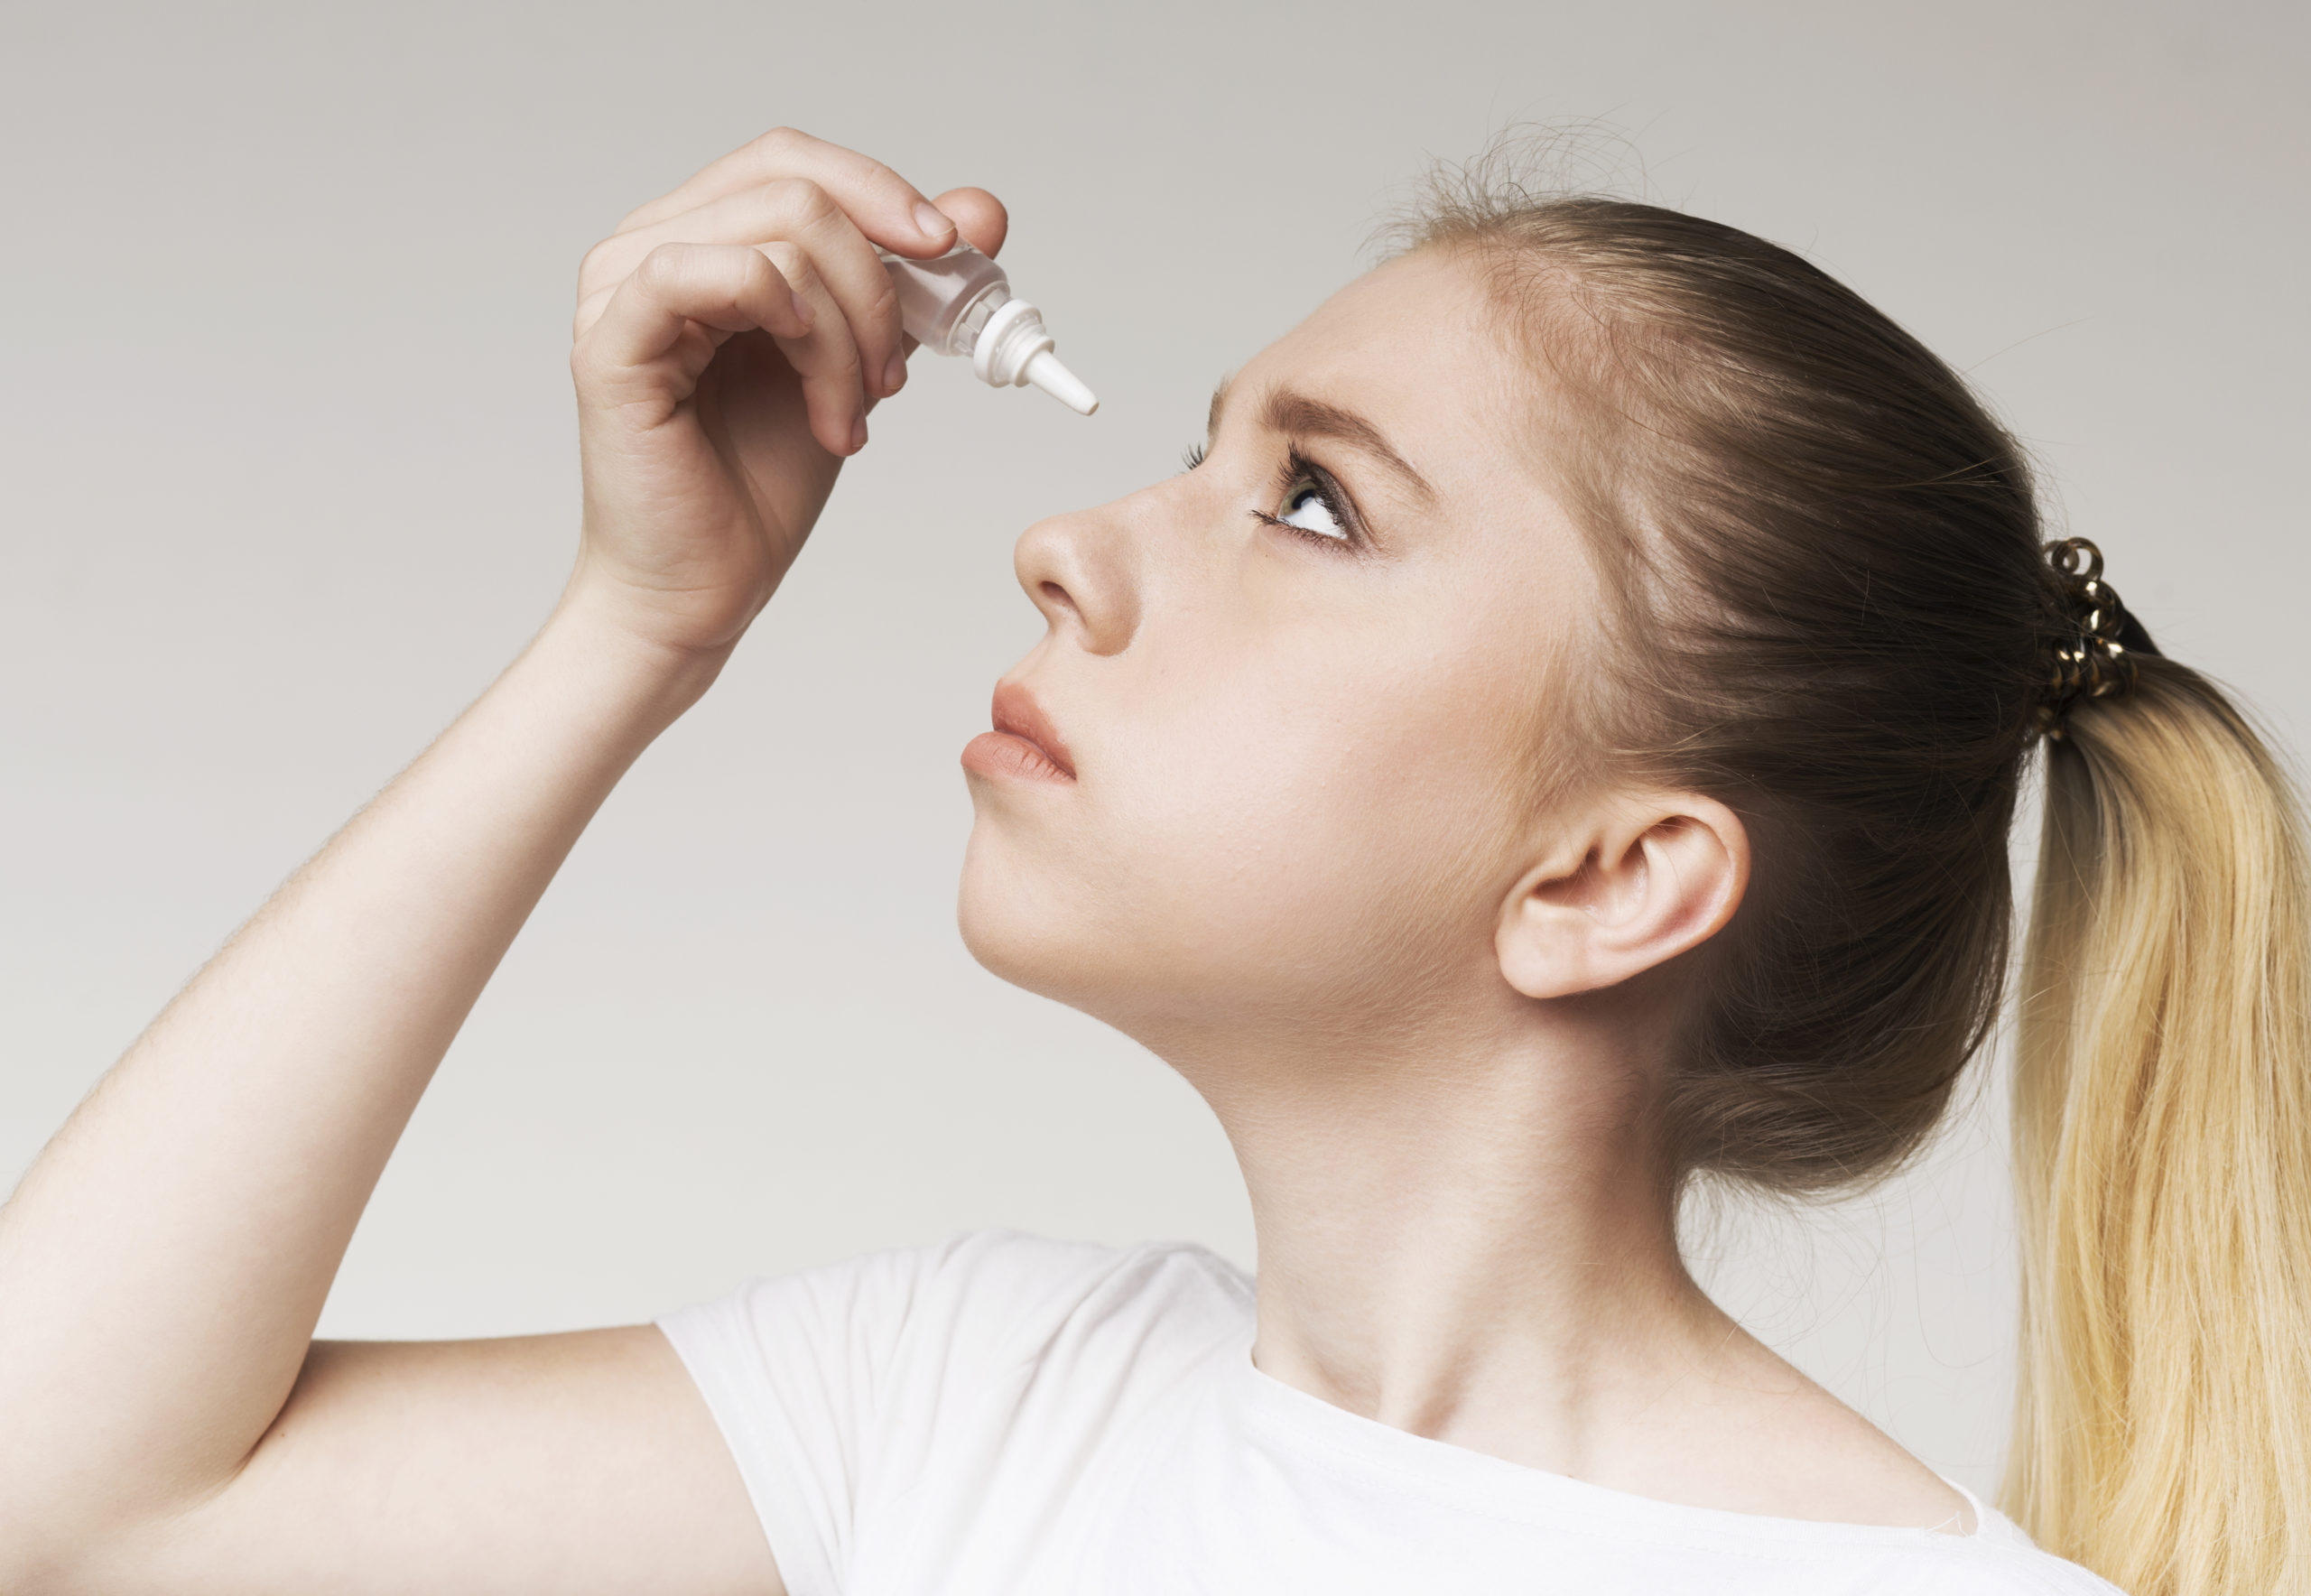 young girl using disease contact eye drop Z4FASK8 scaled - Blog